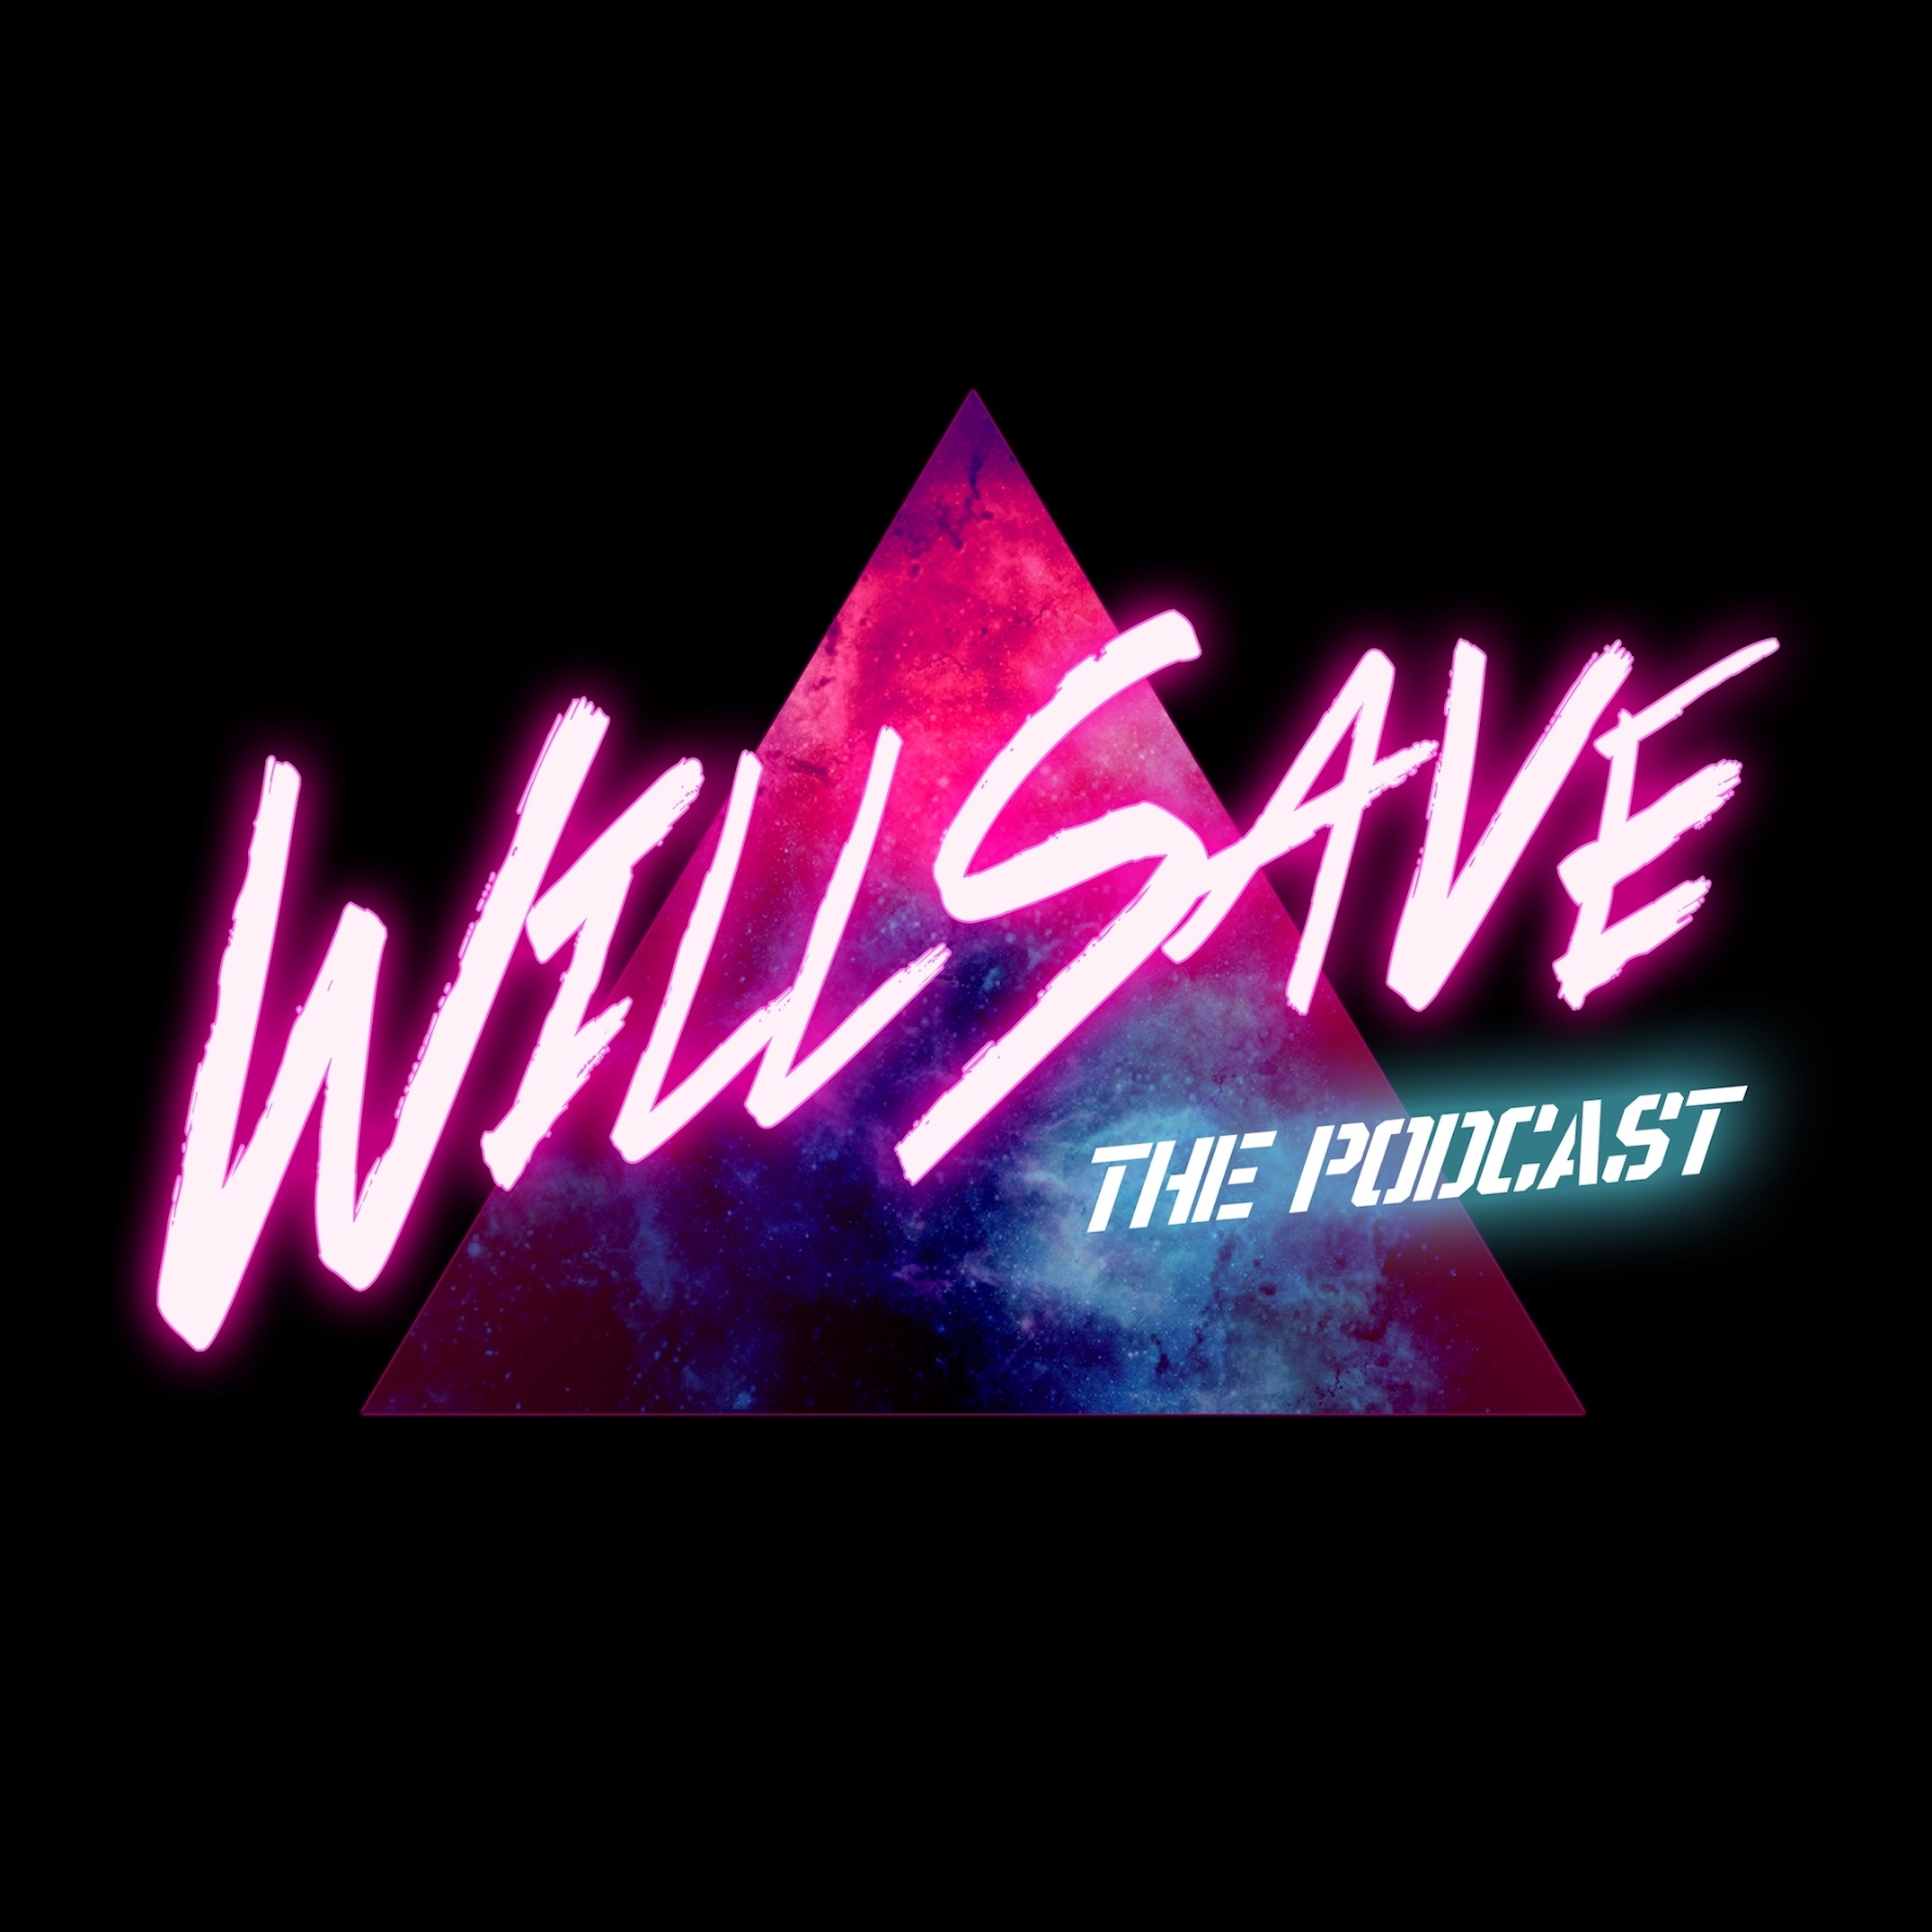 Will Save The Podcast